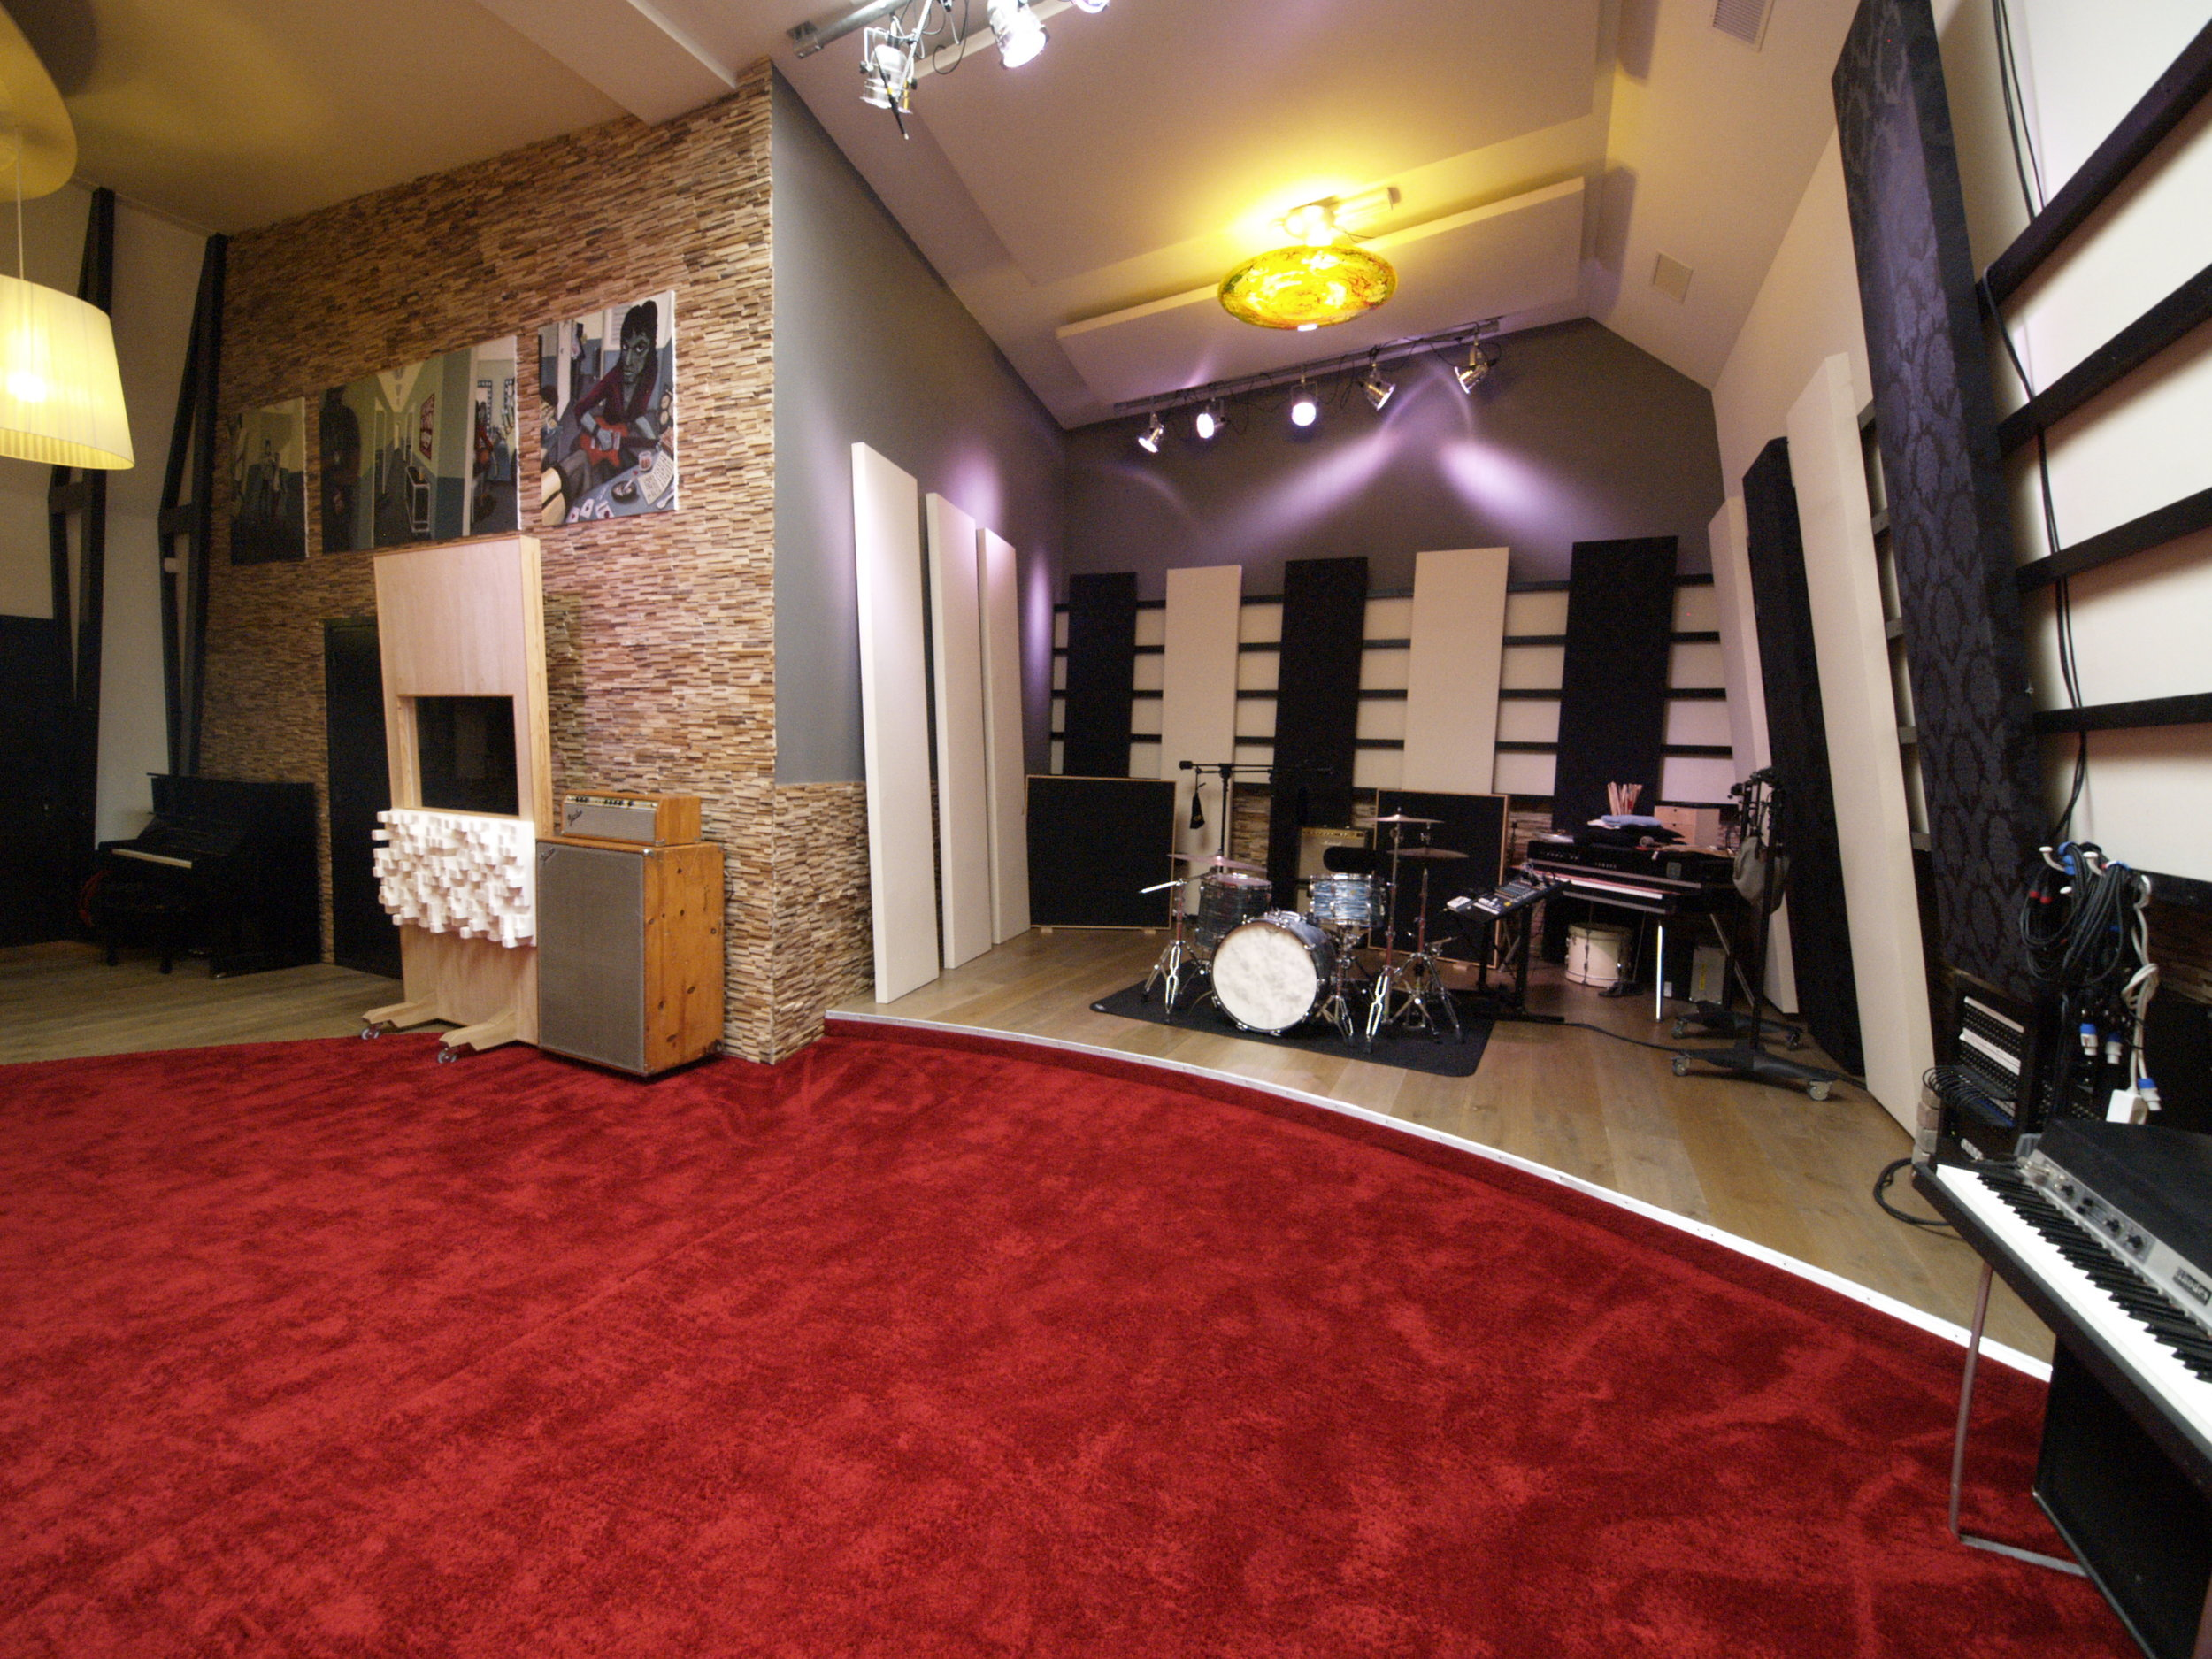 Welcome - Established in 2009 in Rijen, The Netherlands, this state-of-the-art recording studio is characterised by stunning acoustics and a wide range of high-end equipment.We believe that a pleasant working environment helps musicians reach their peak performance; which is why atmosphere is of paramount importance to us.